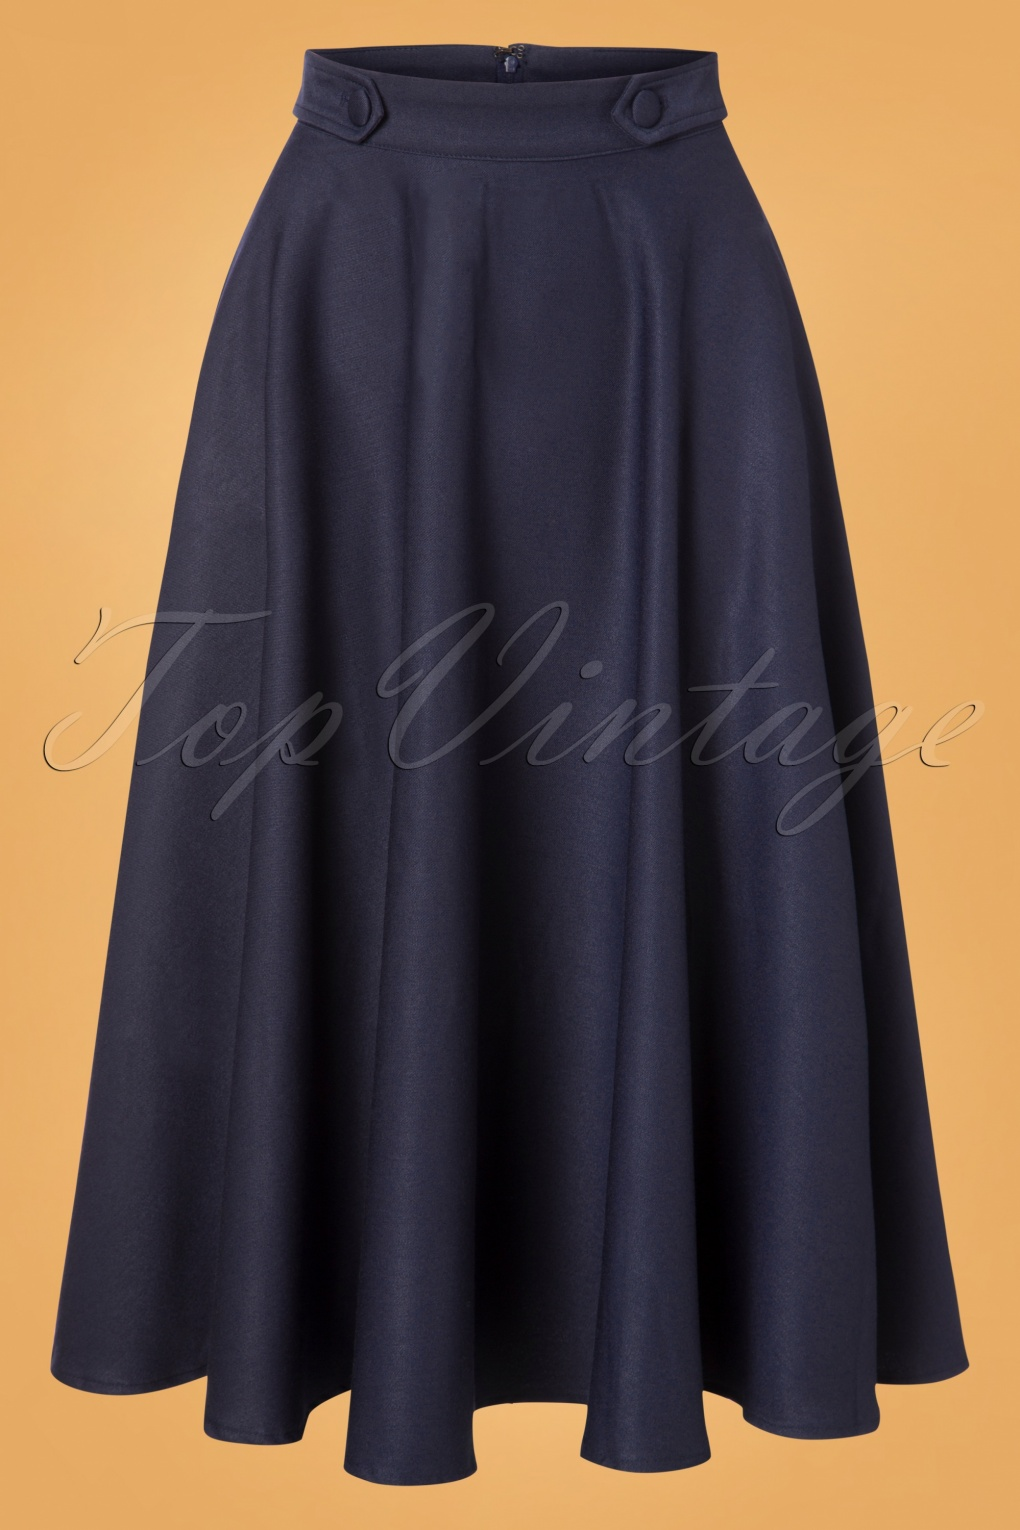 1940s Skirt History 50s Di Di Swing Skirt in Night Blue £36.50 AT vintagedancer.com